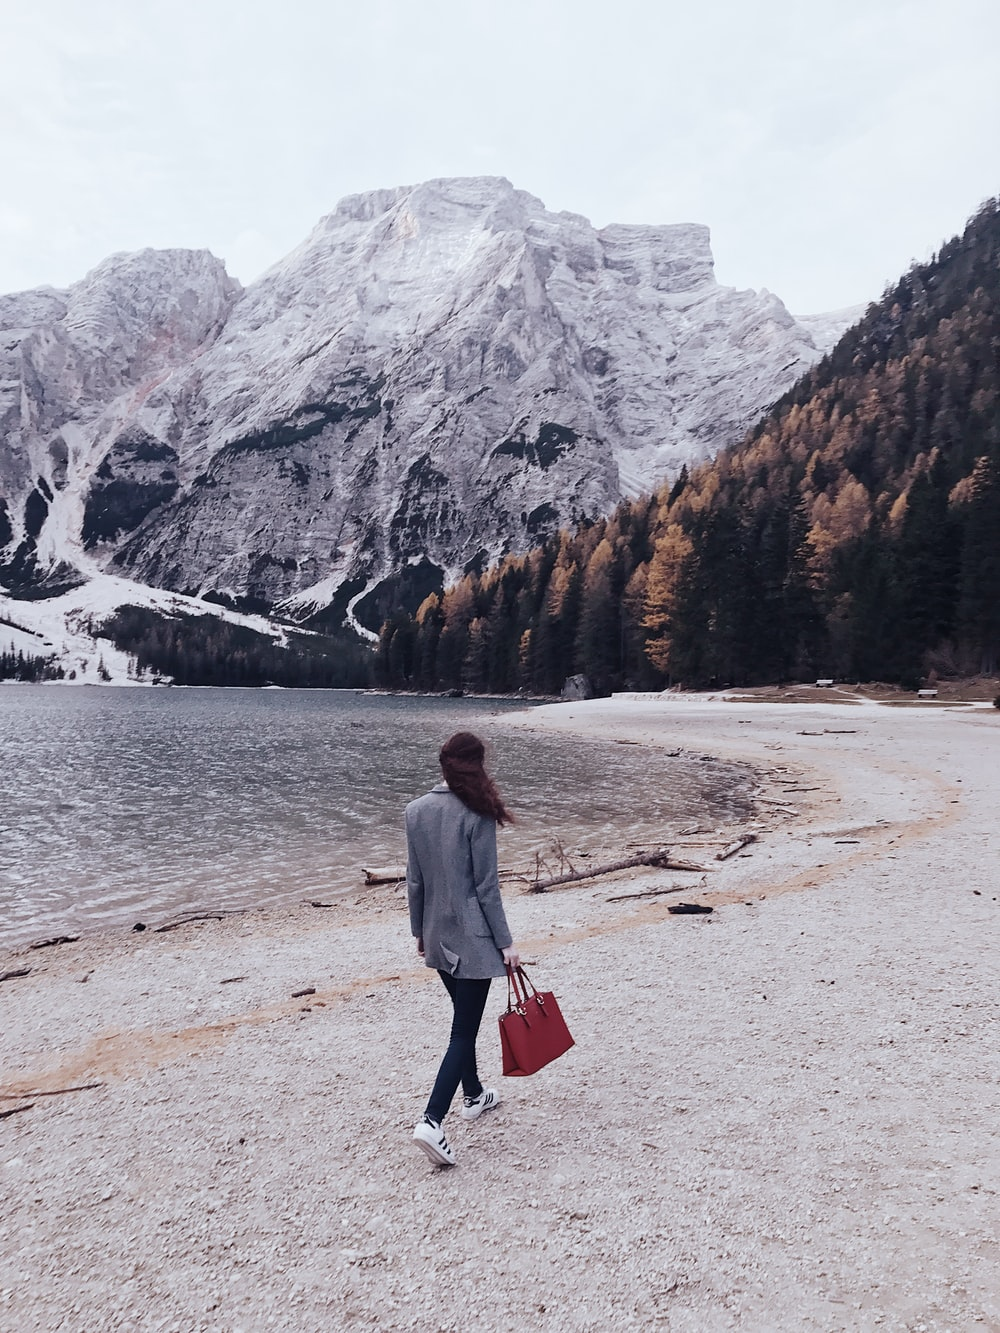 woman walking beside body of water toward snow covered mountain during daytime